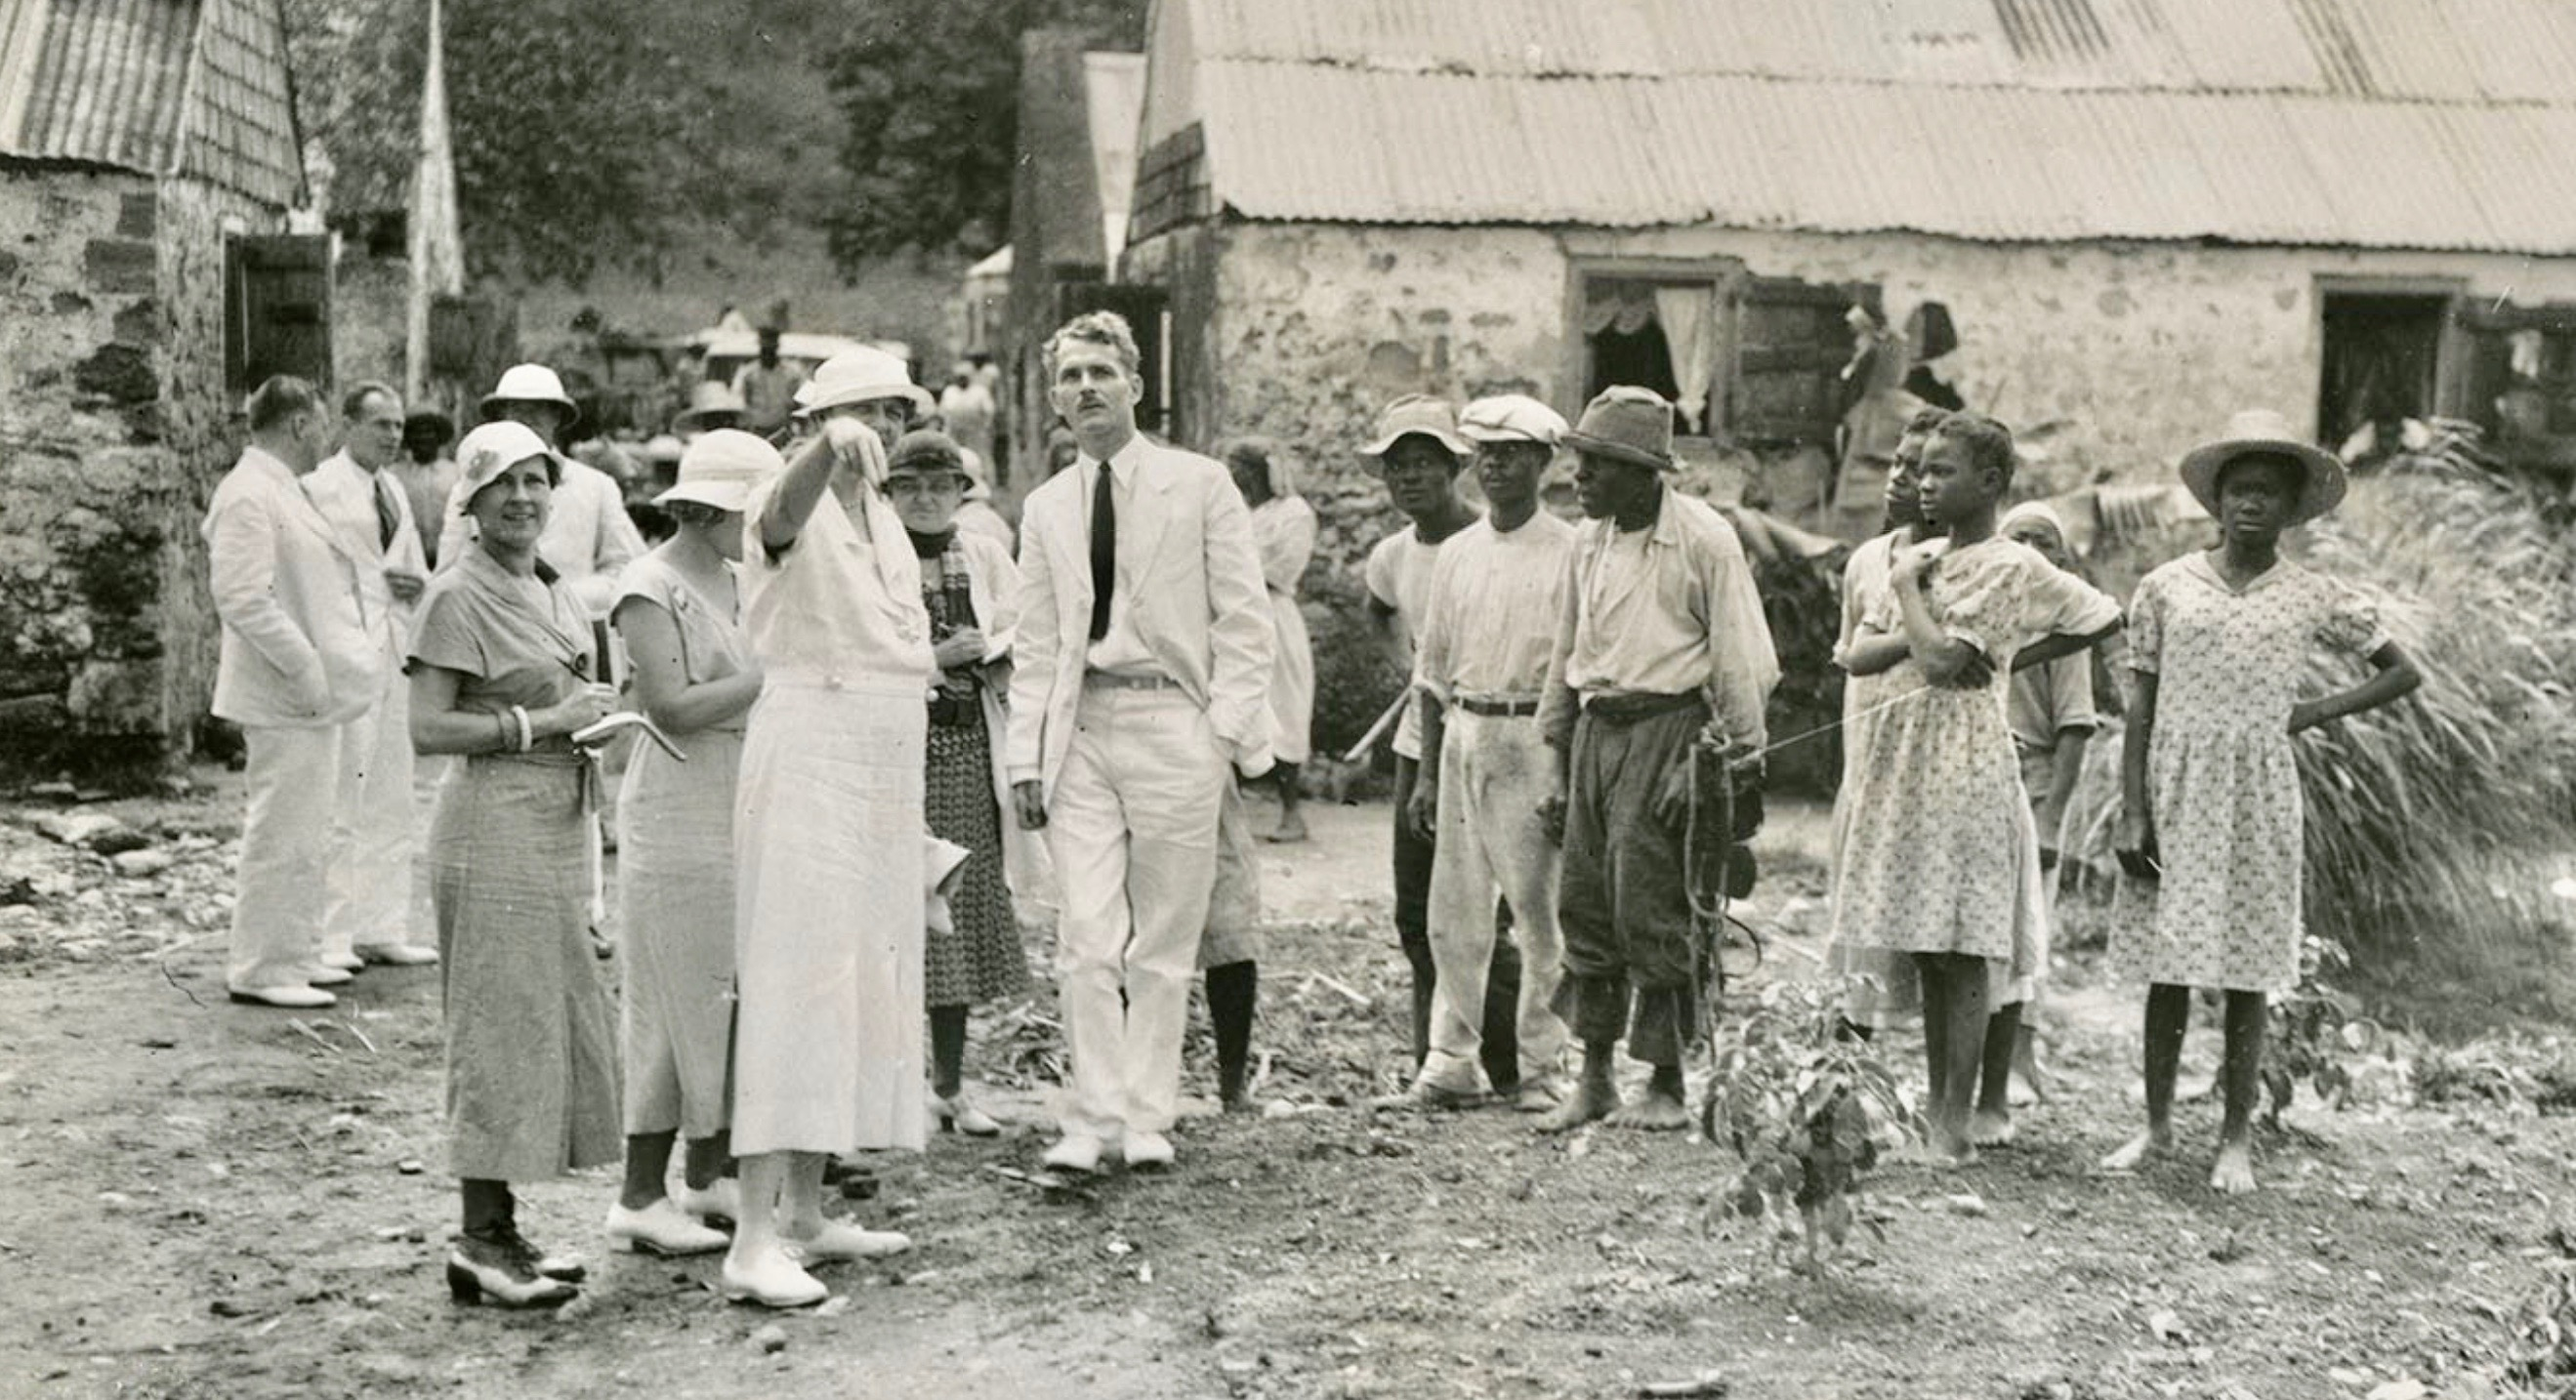 First Lady, Eleanor Roosevelt visits the US Virgin Islands in 1934 by Valerie Sims